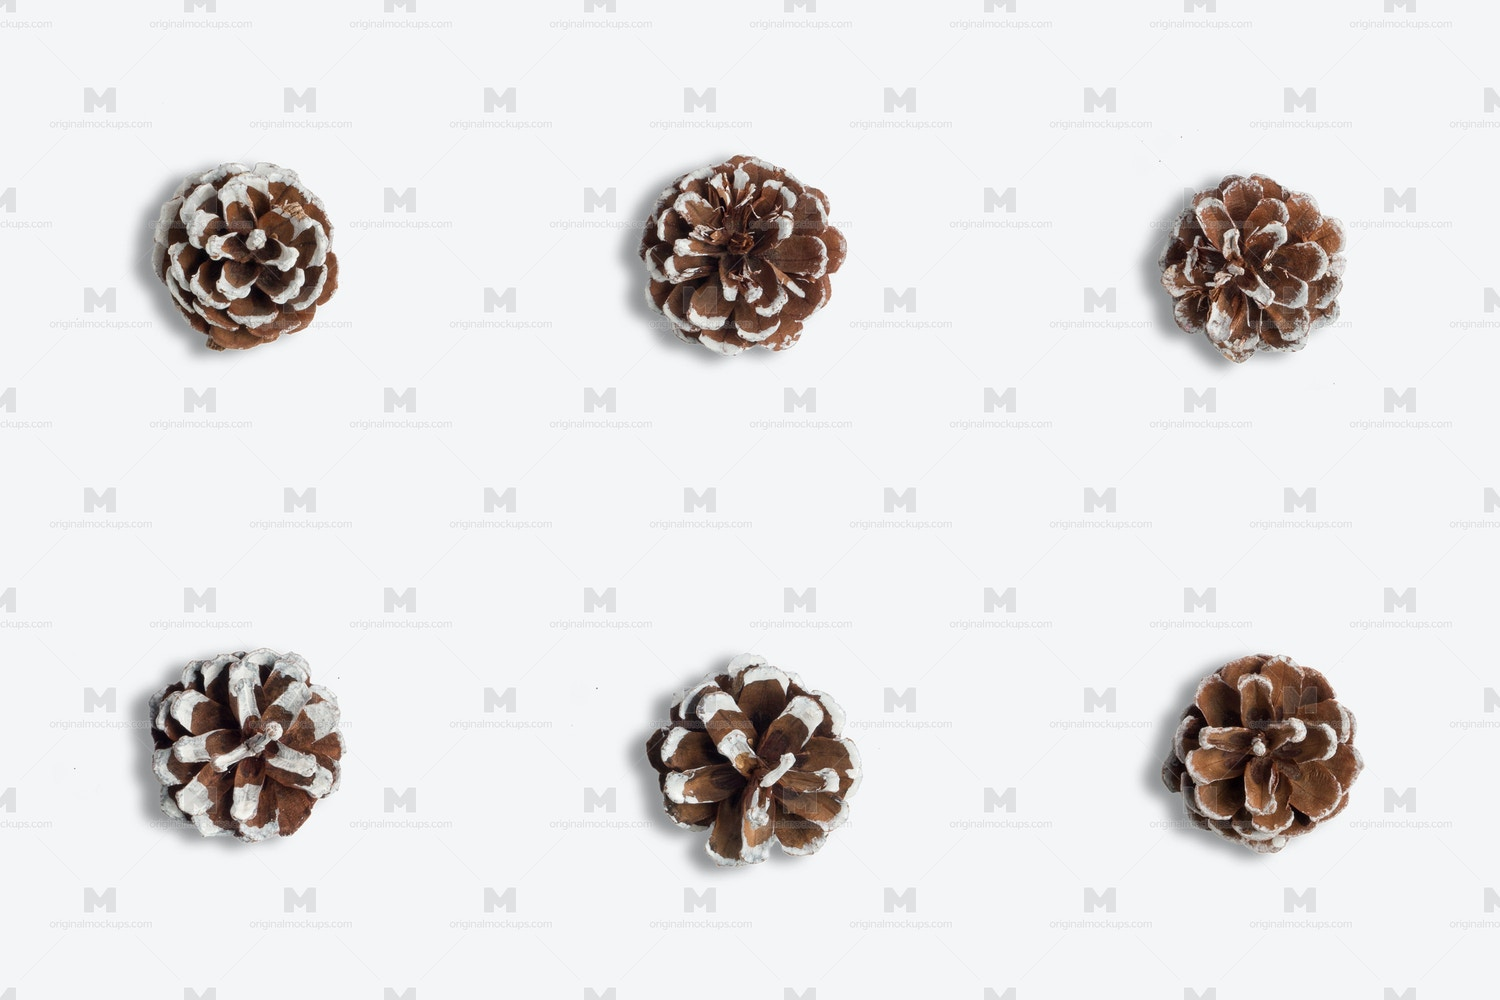 Christmas Snow Pinecones Isolate by Original Mockups on Original Mockups